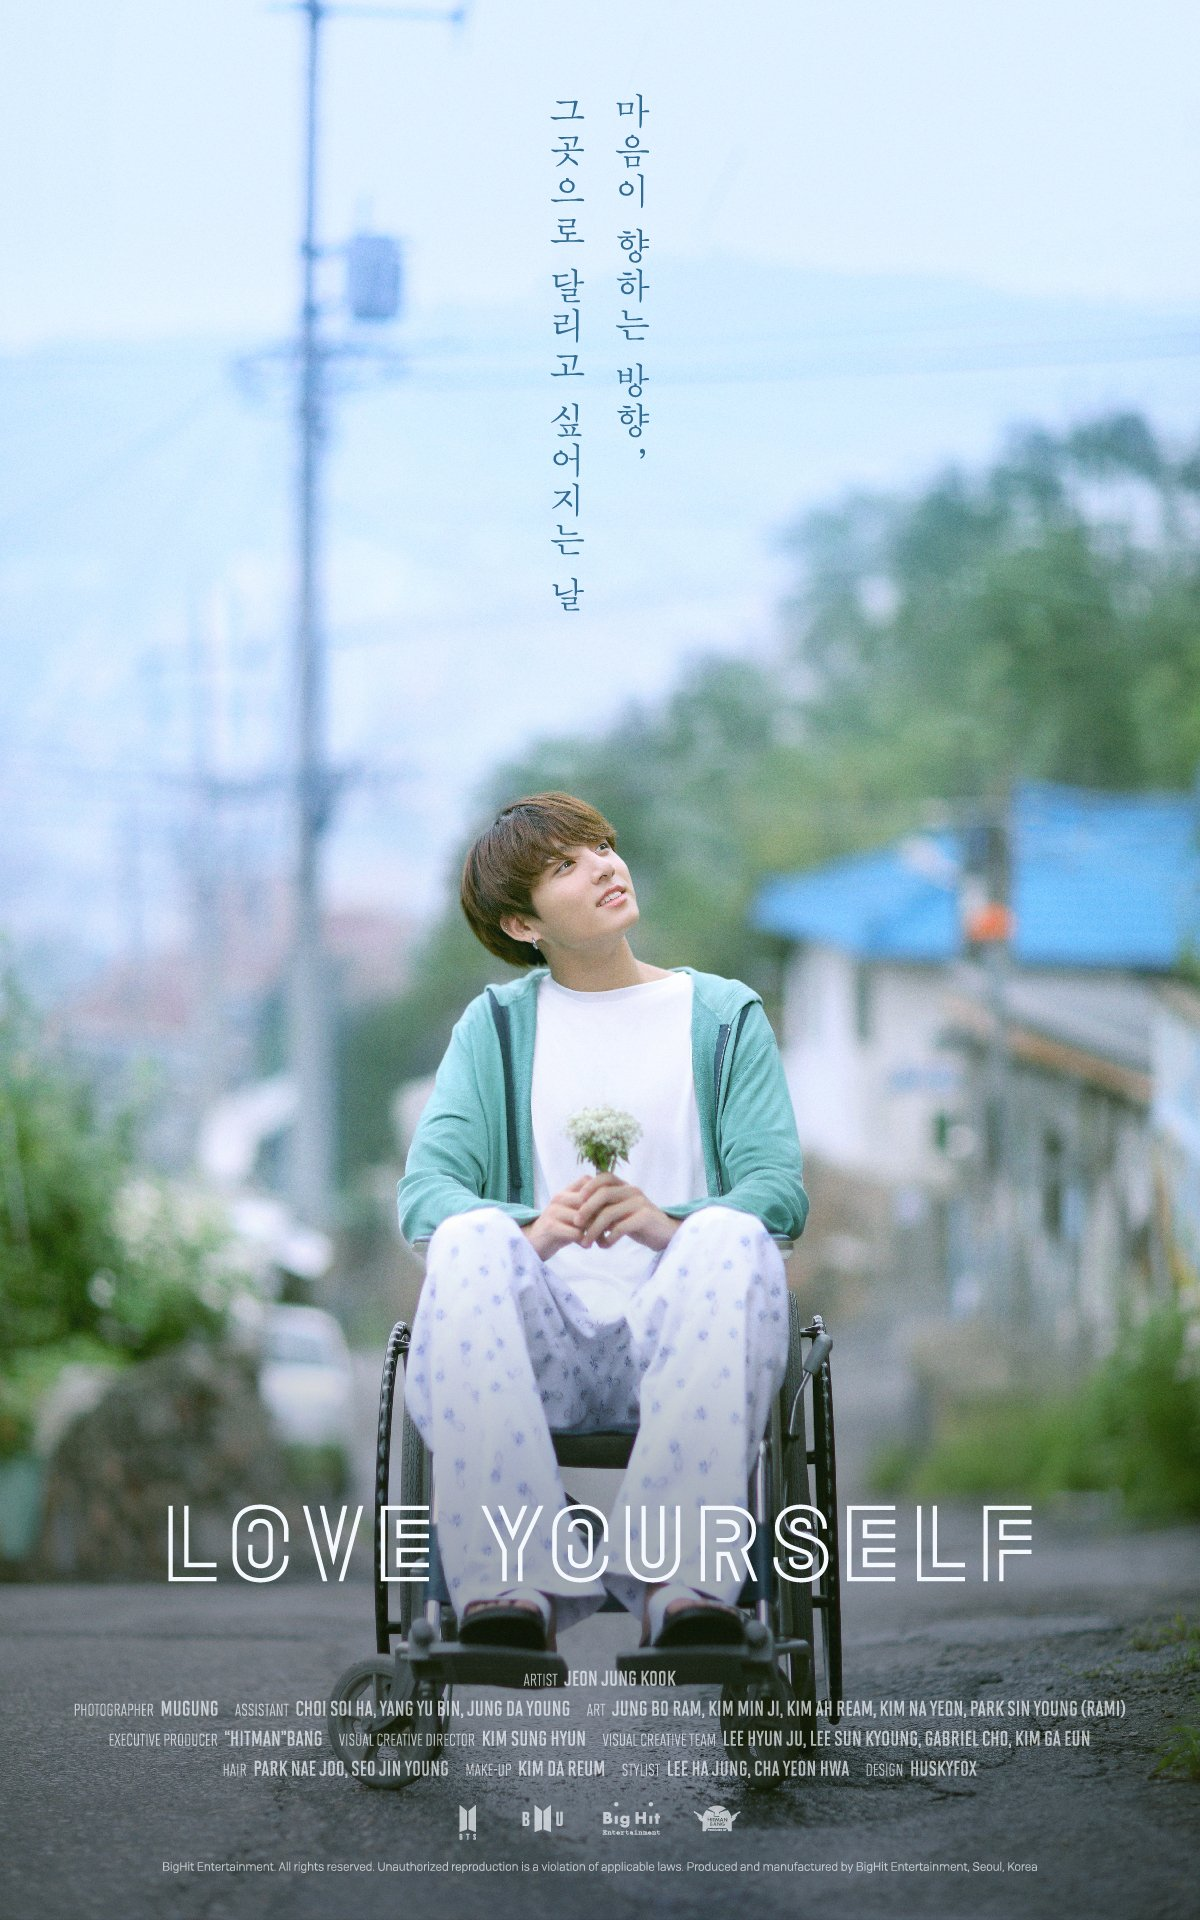 #BTS #방탄소년단 #LOVE_YOURSELF Poster  #JUNGKOOK https://t.co/oxq0JamWz8